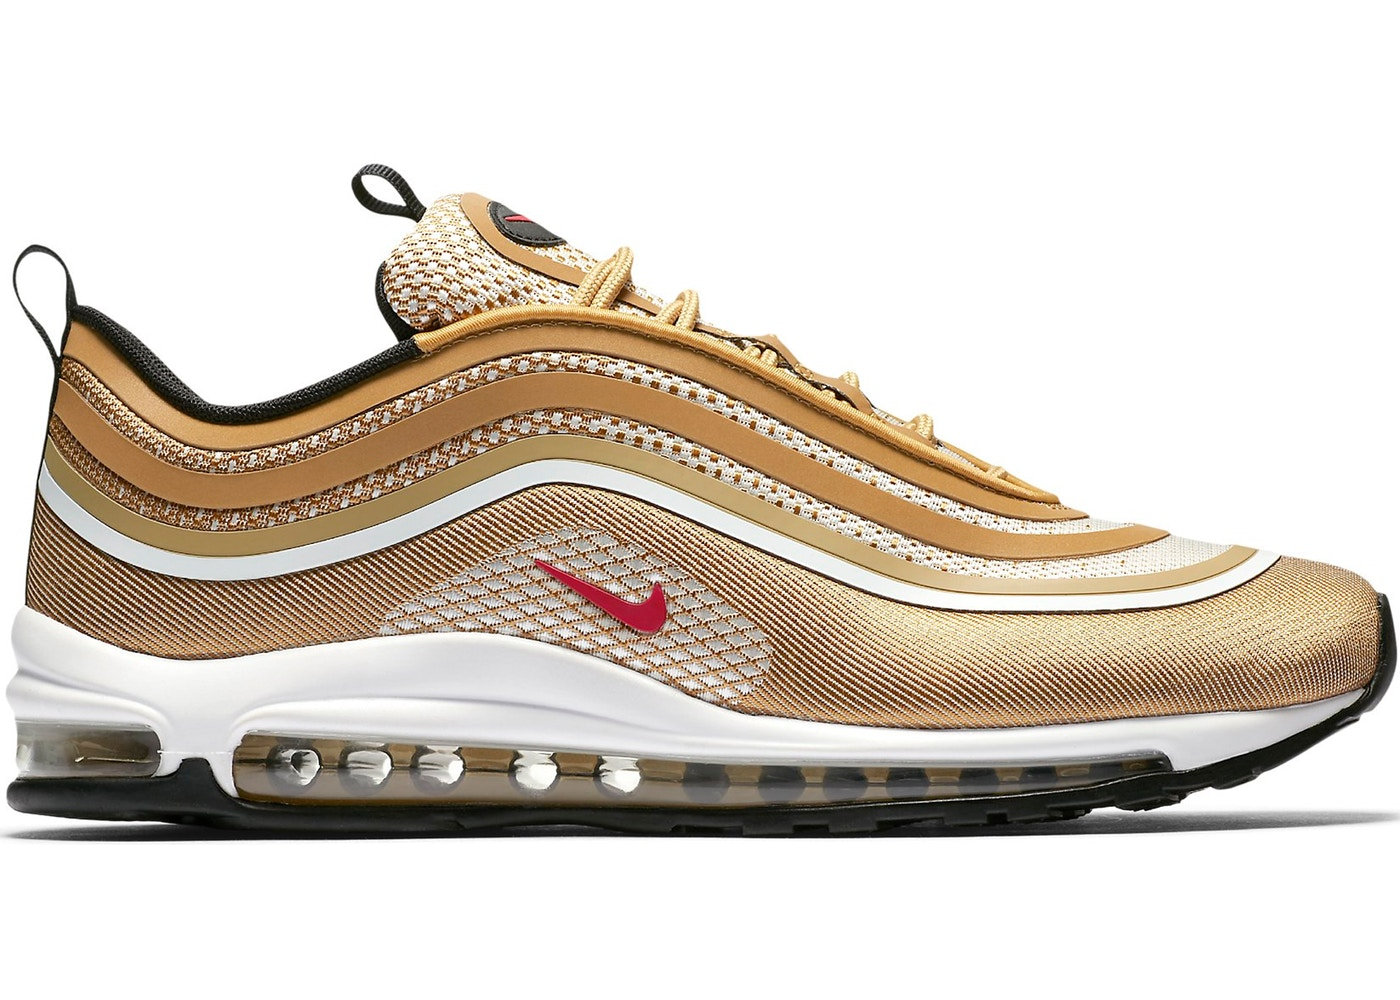 nike air max 97 ultra metallic rose gold⁠⁠⁠⁠